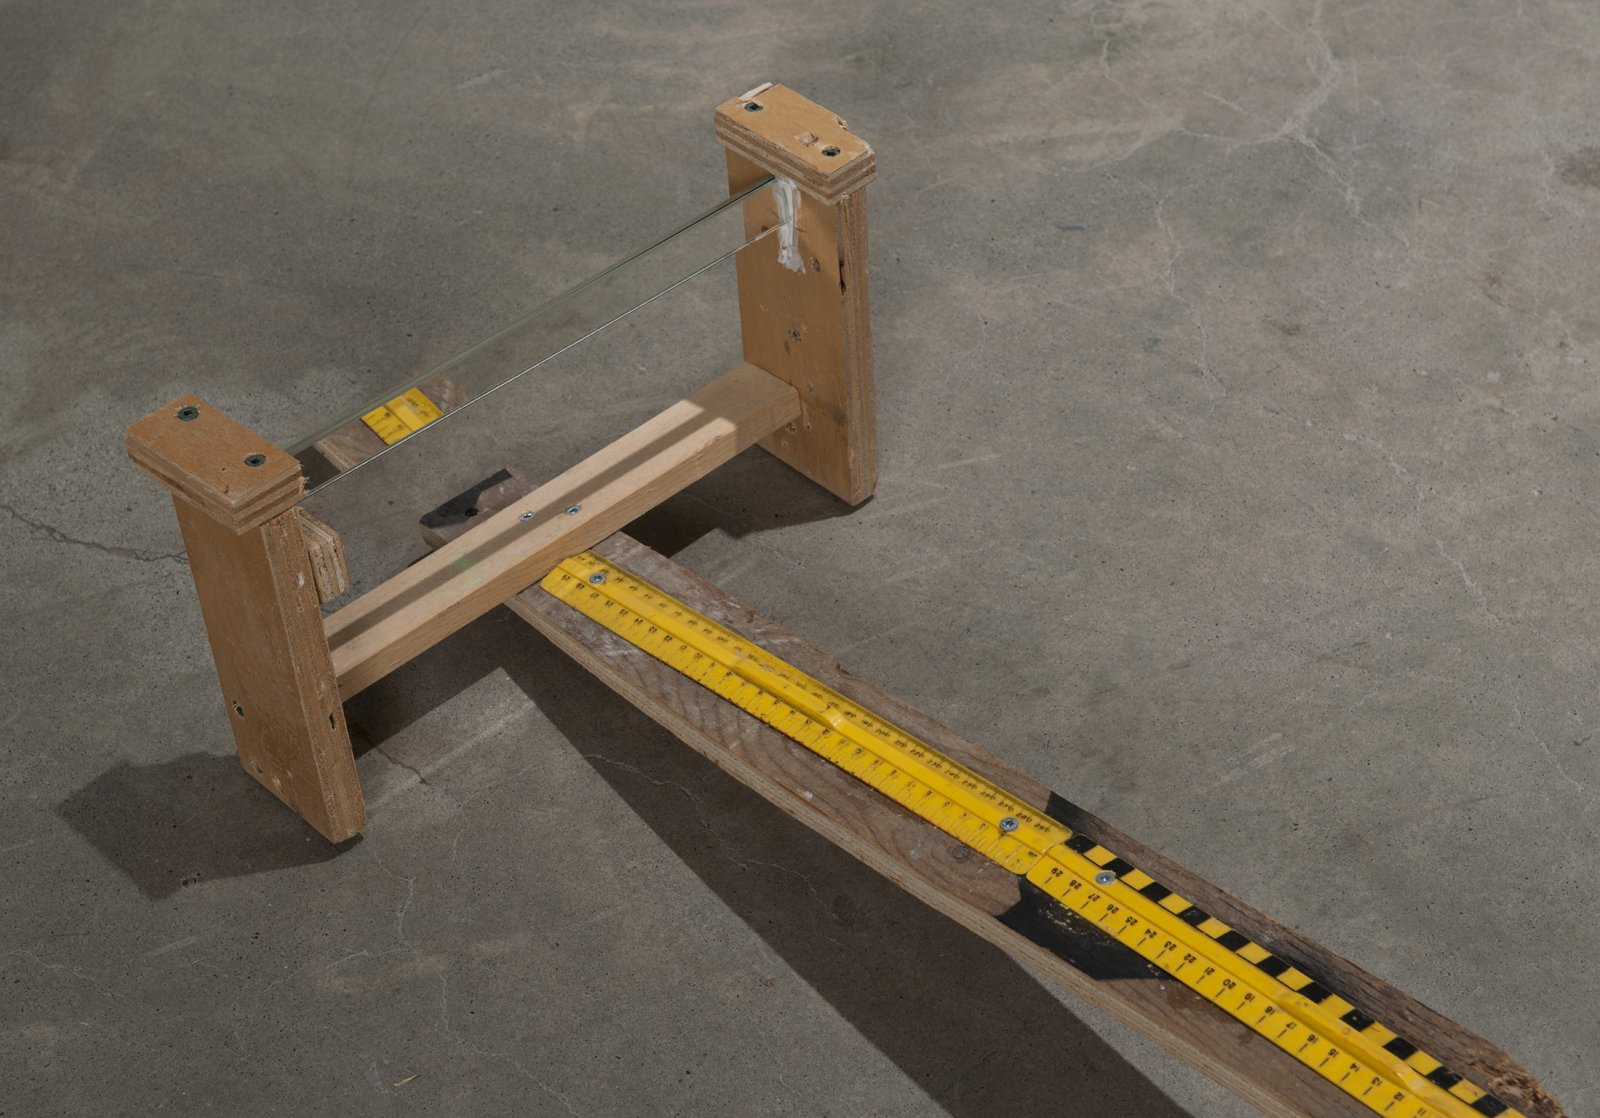 Julia Feyrer, Curriculum Arm (detail), 2011, wood, plastic rulers, handle, double sided mirror, 34 x 29 x 131 in. (8 x 14 x 50 cm) by Julia Feyrer